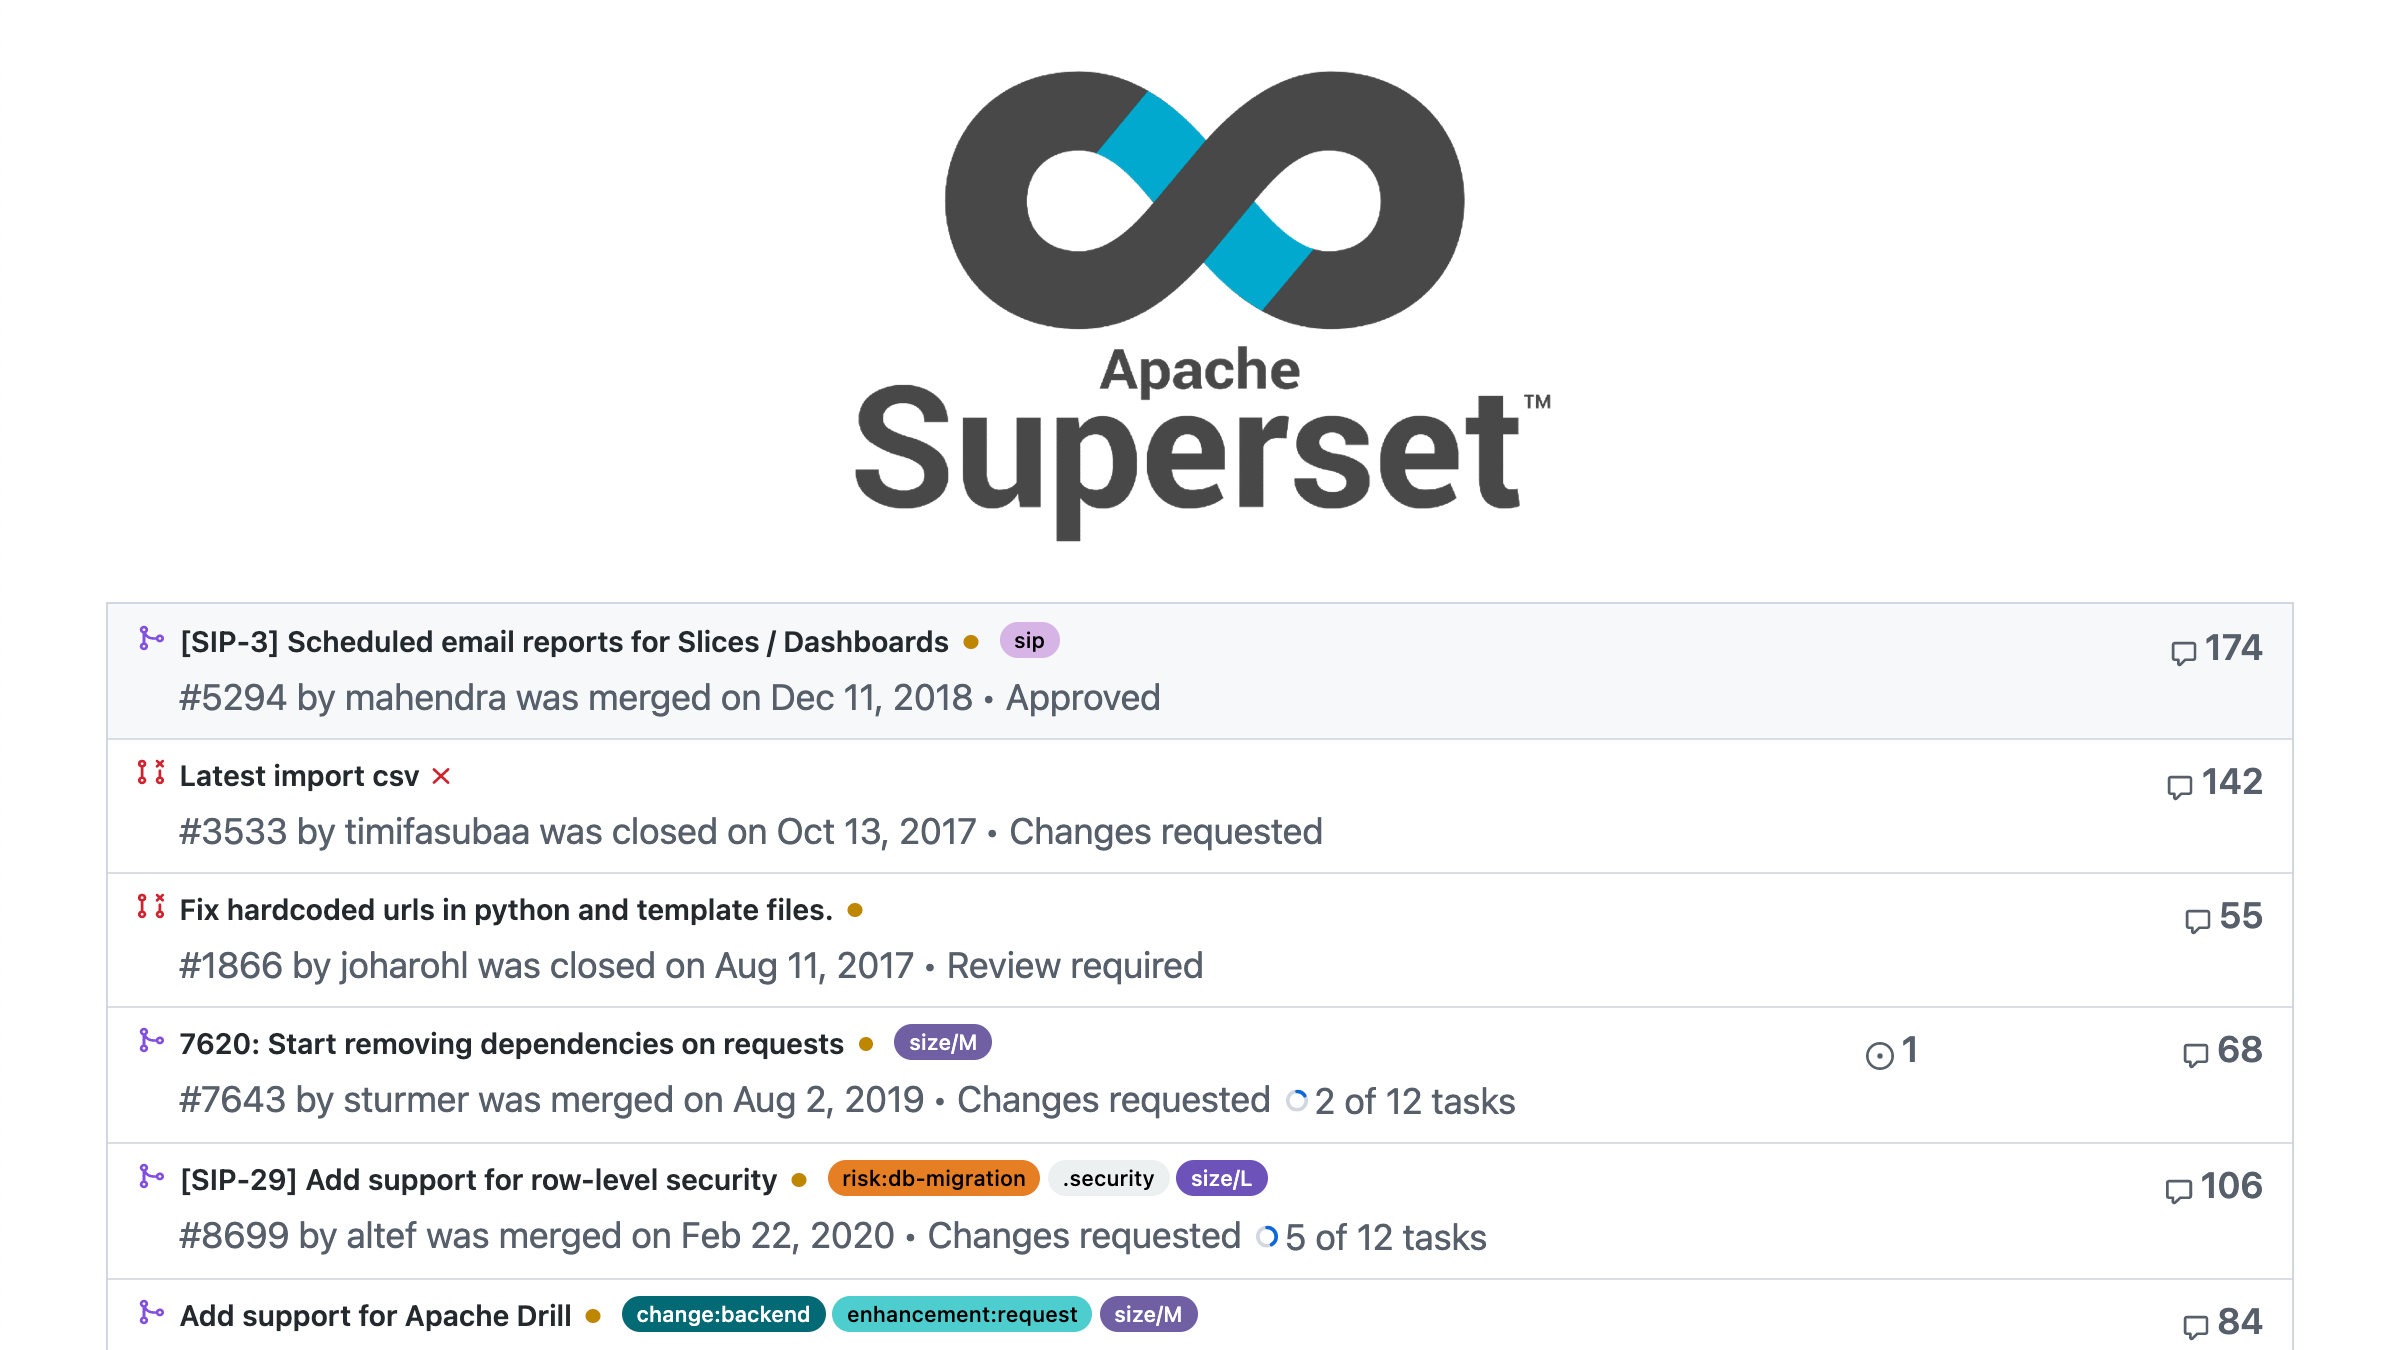 images/apache-superset-github-pull-request-code-review.jpg